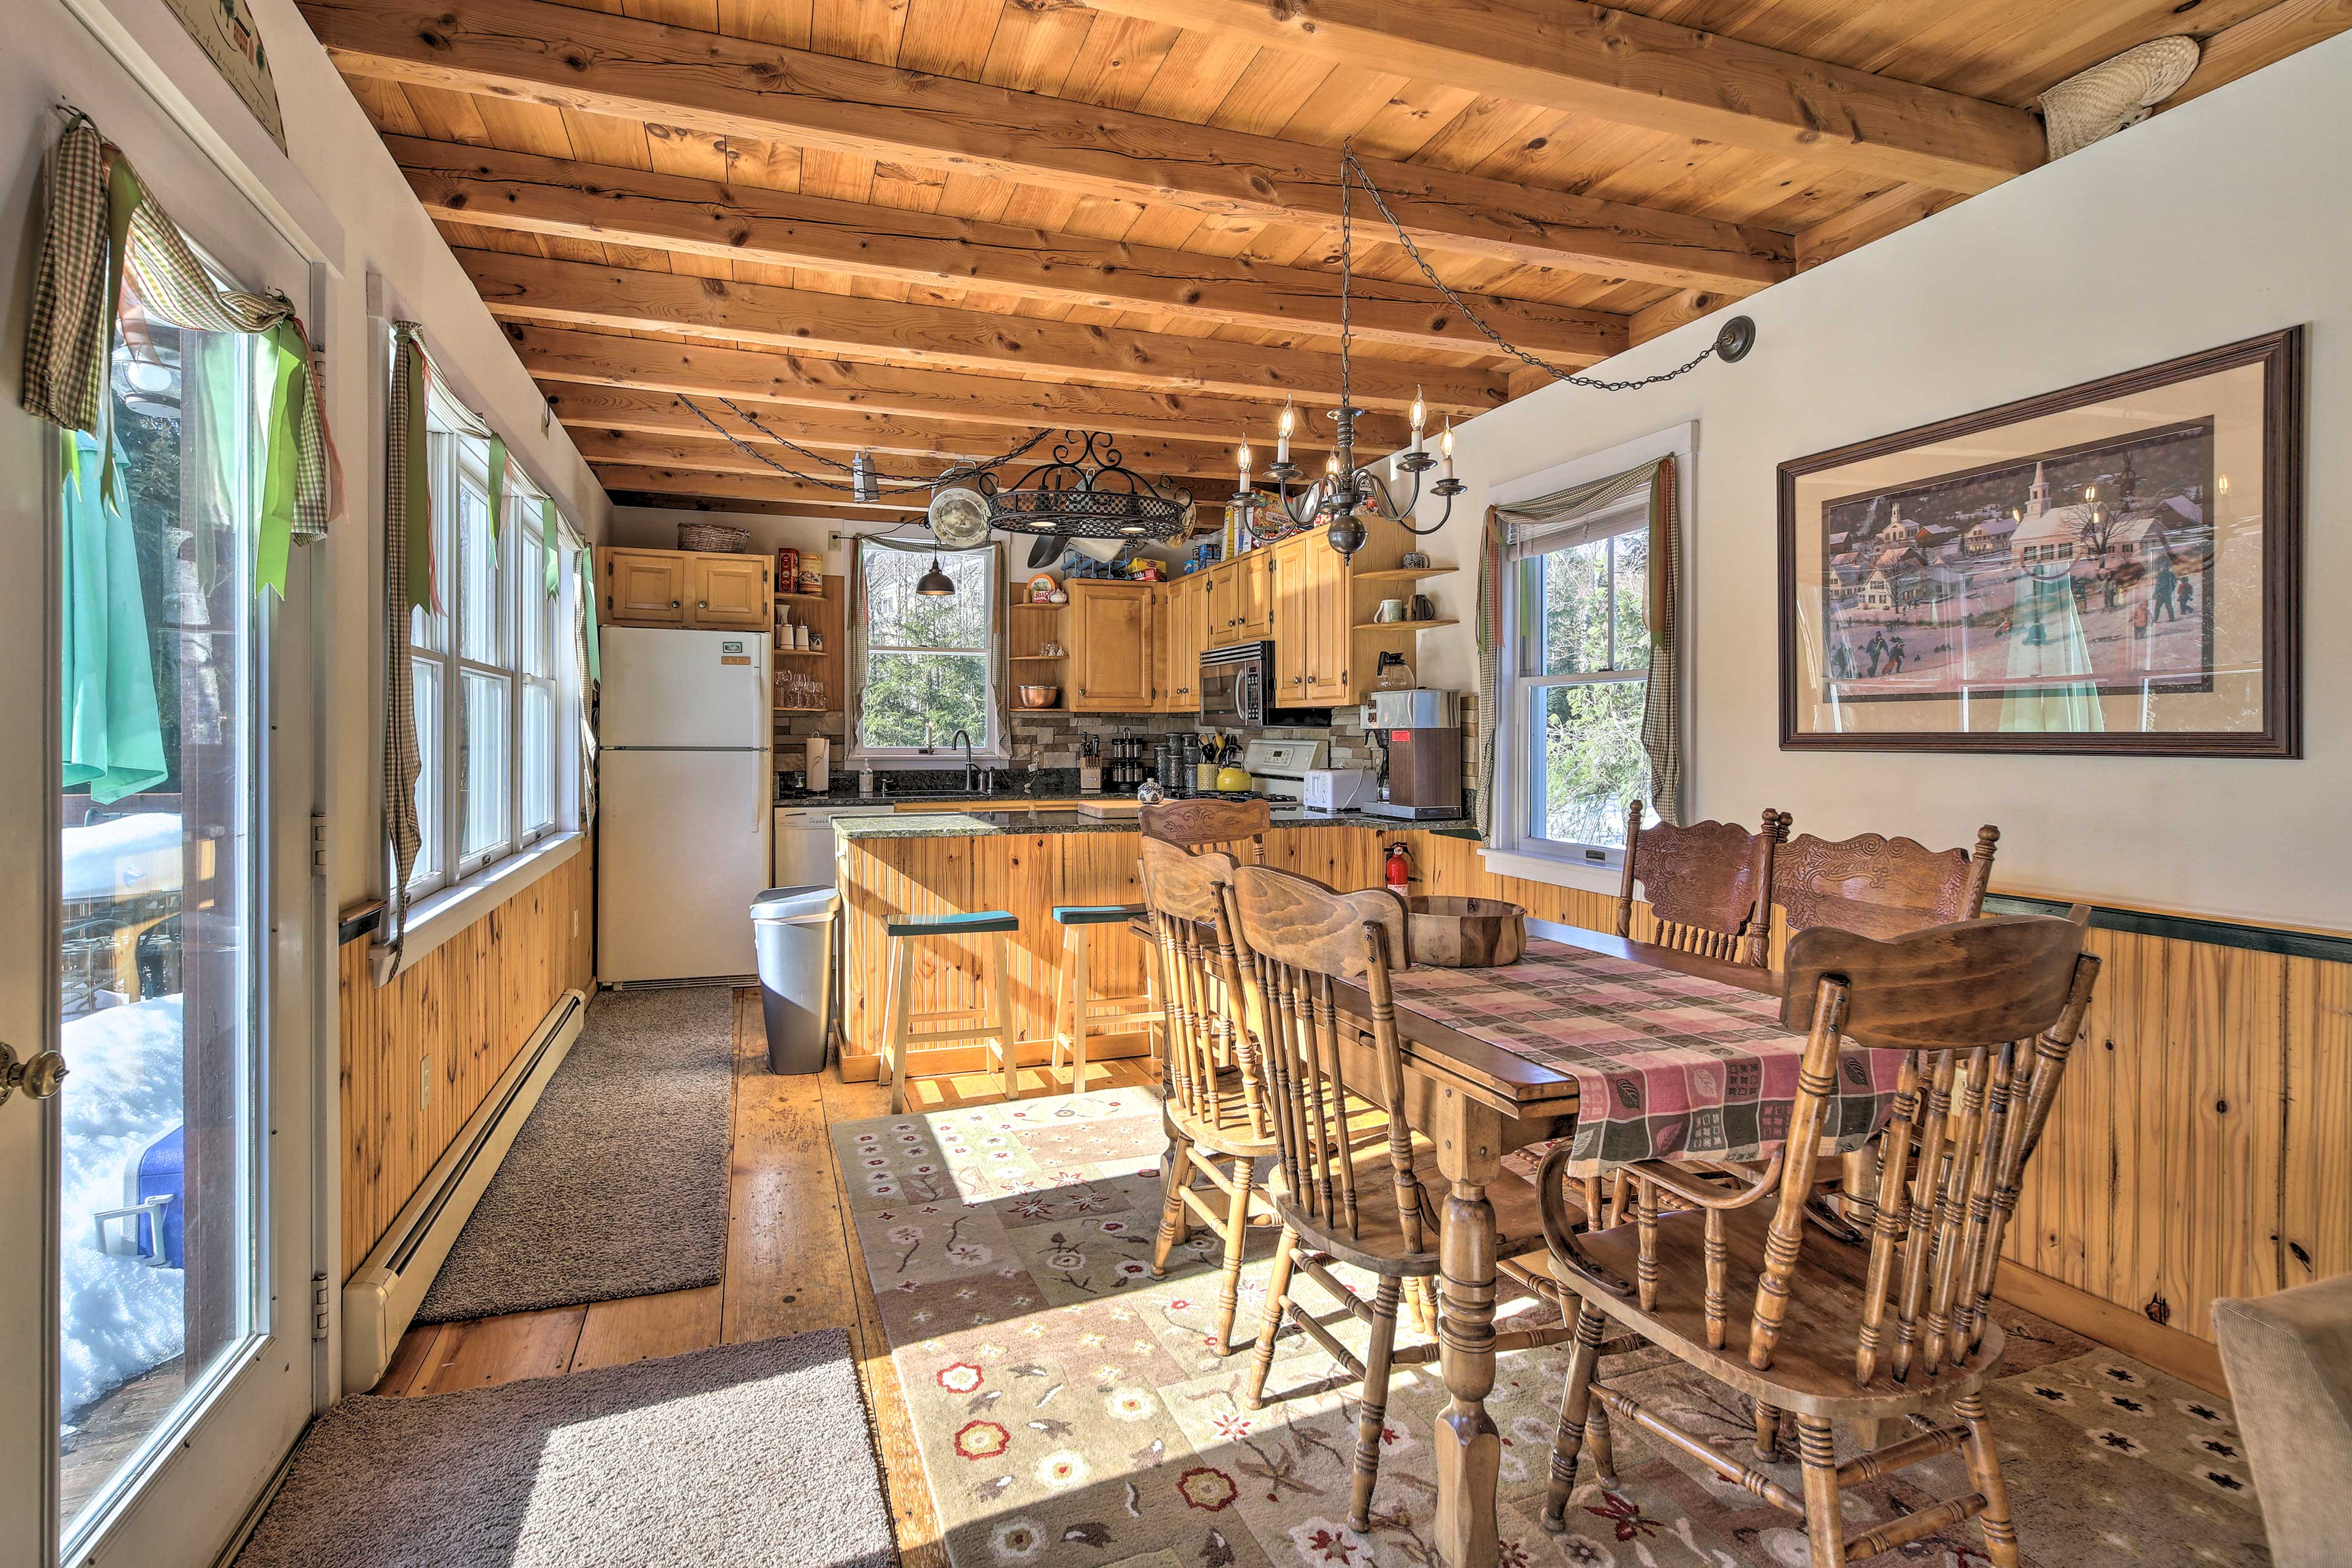 The open living space boasts hardwood floors and old-fashioned charm.